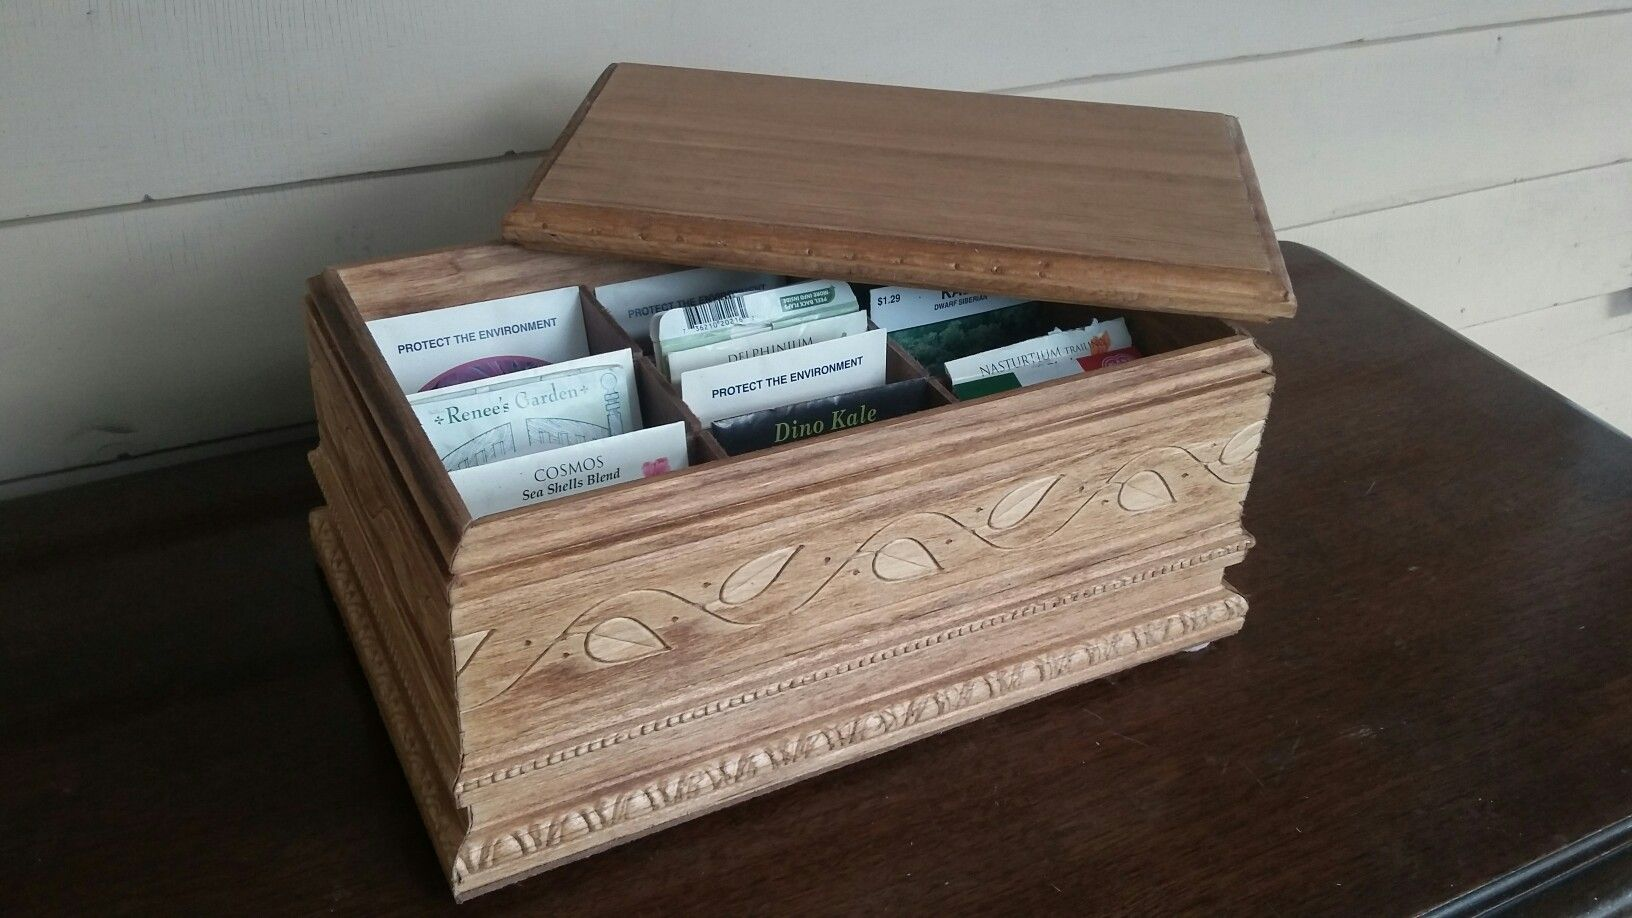 Deluxe Seed Box -  featuring 9 compartments to hold multiple, full size, seed packets. Made by Back to Basics Woodcrafting.